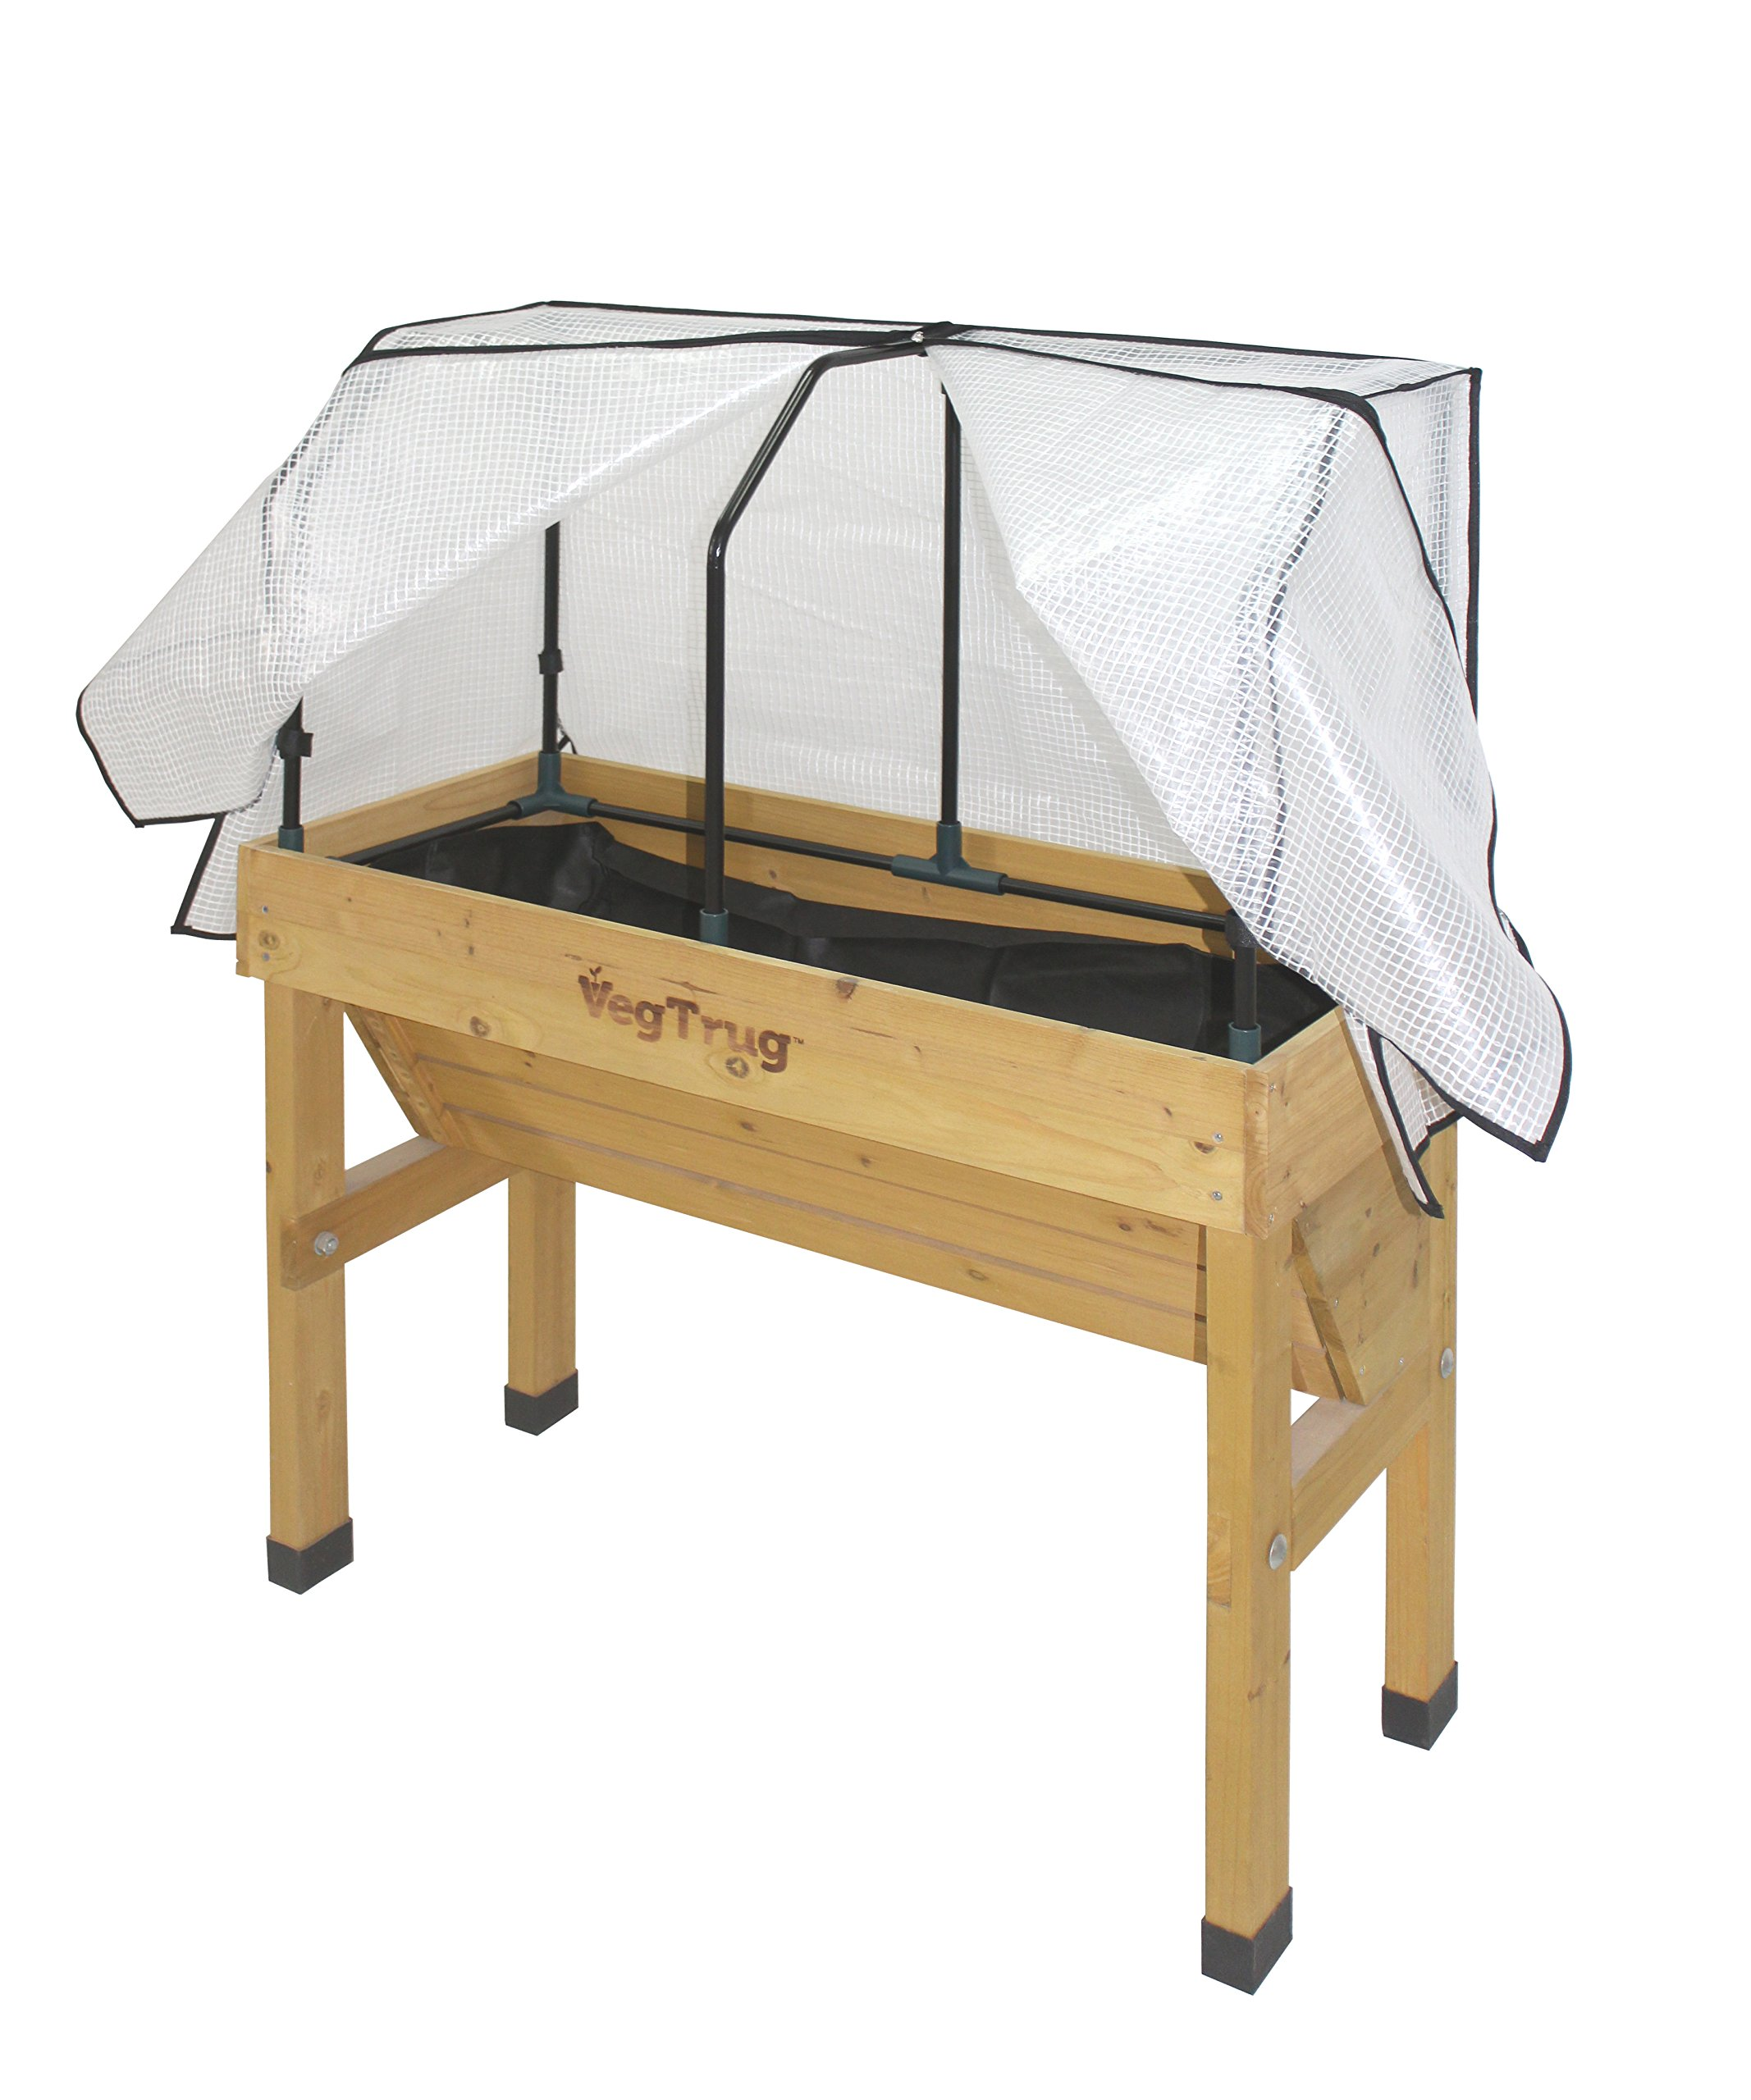 Vegtrug SGFPE 1136 USA Small Greenhouse Frame and PE Cover